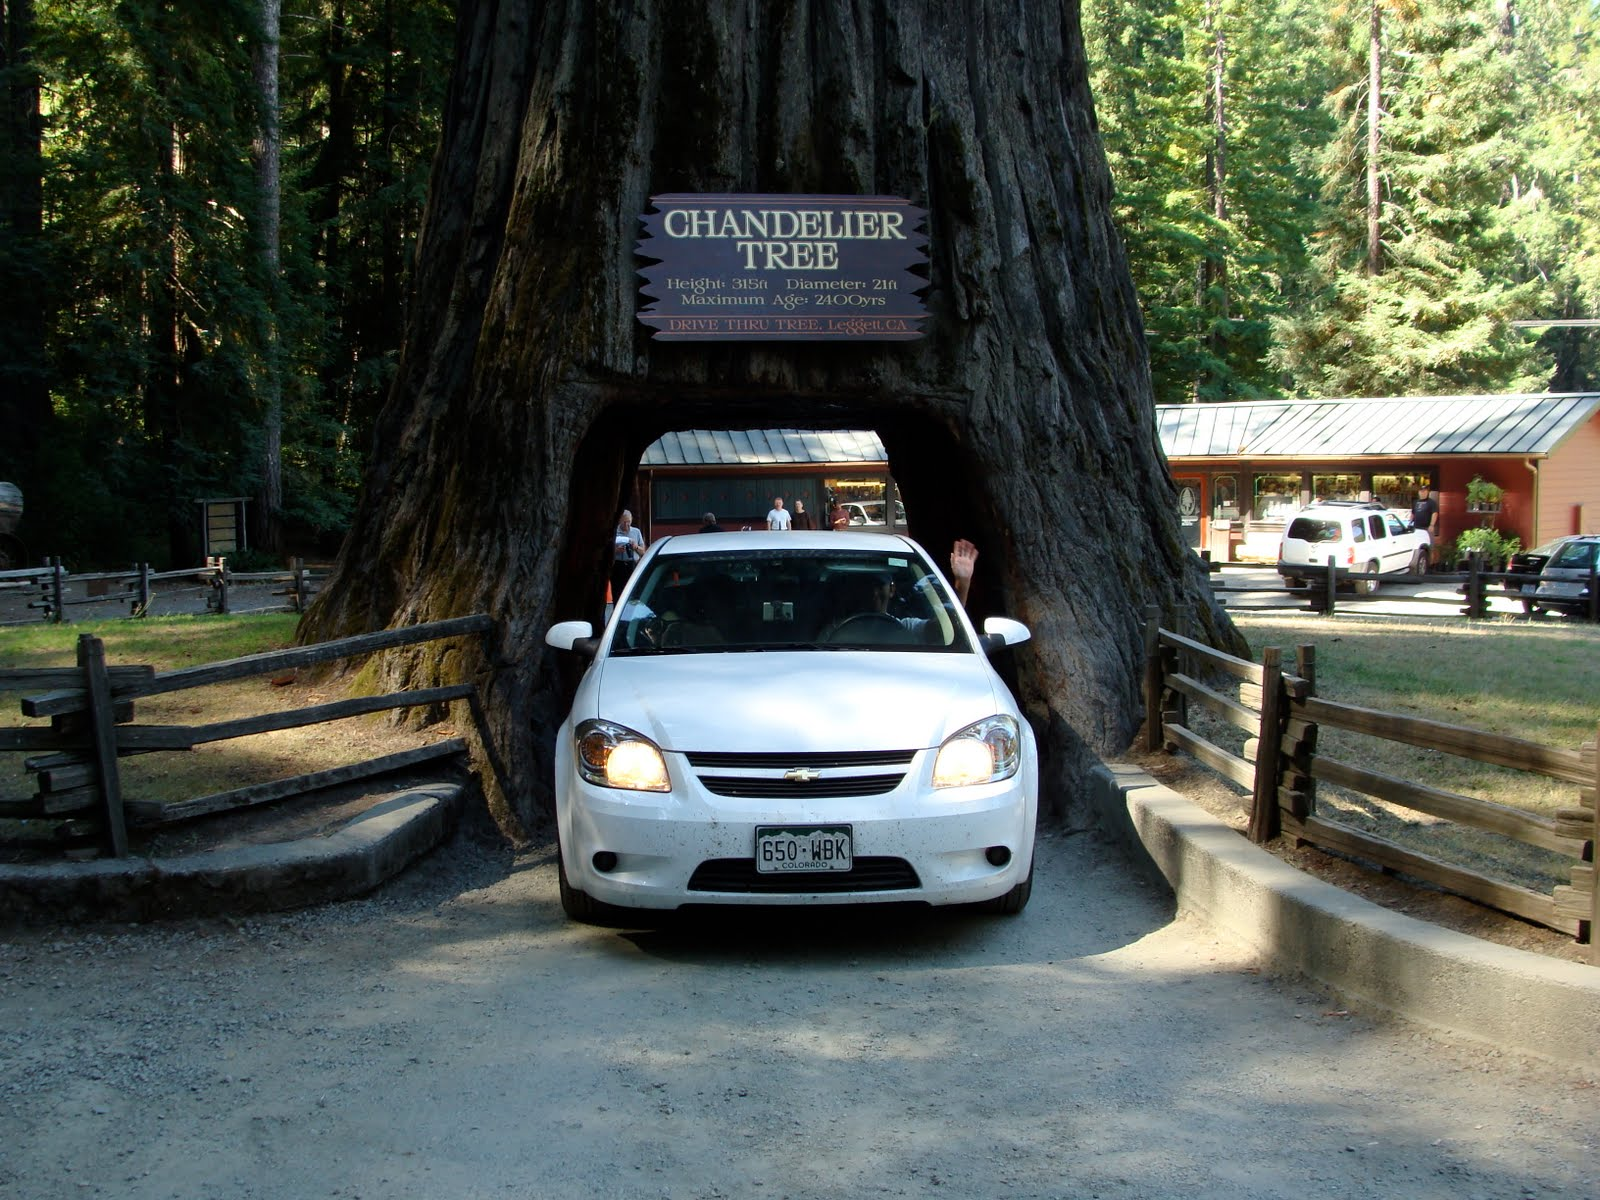 Life as a sias everythings bigger in texasexcept for the trees the avenue of the giants is a 30 mile drive that wanders in and out of patchy old growth redwood groves whereas chandelier tree arubaitofo Gallery